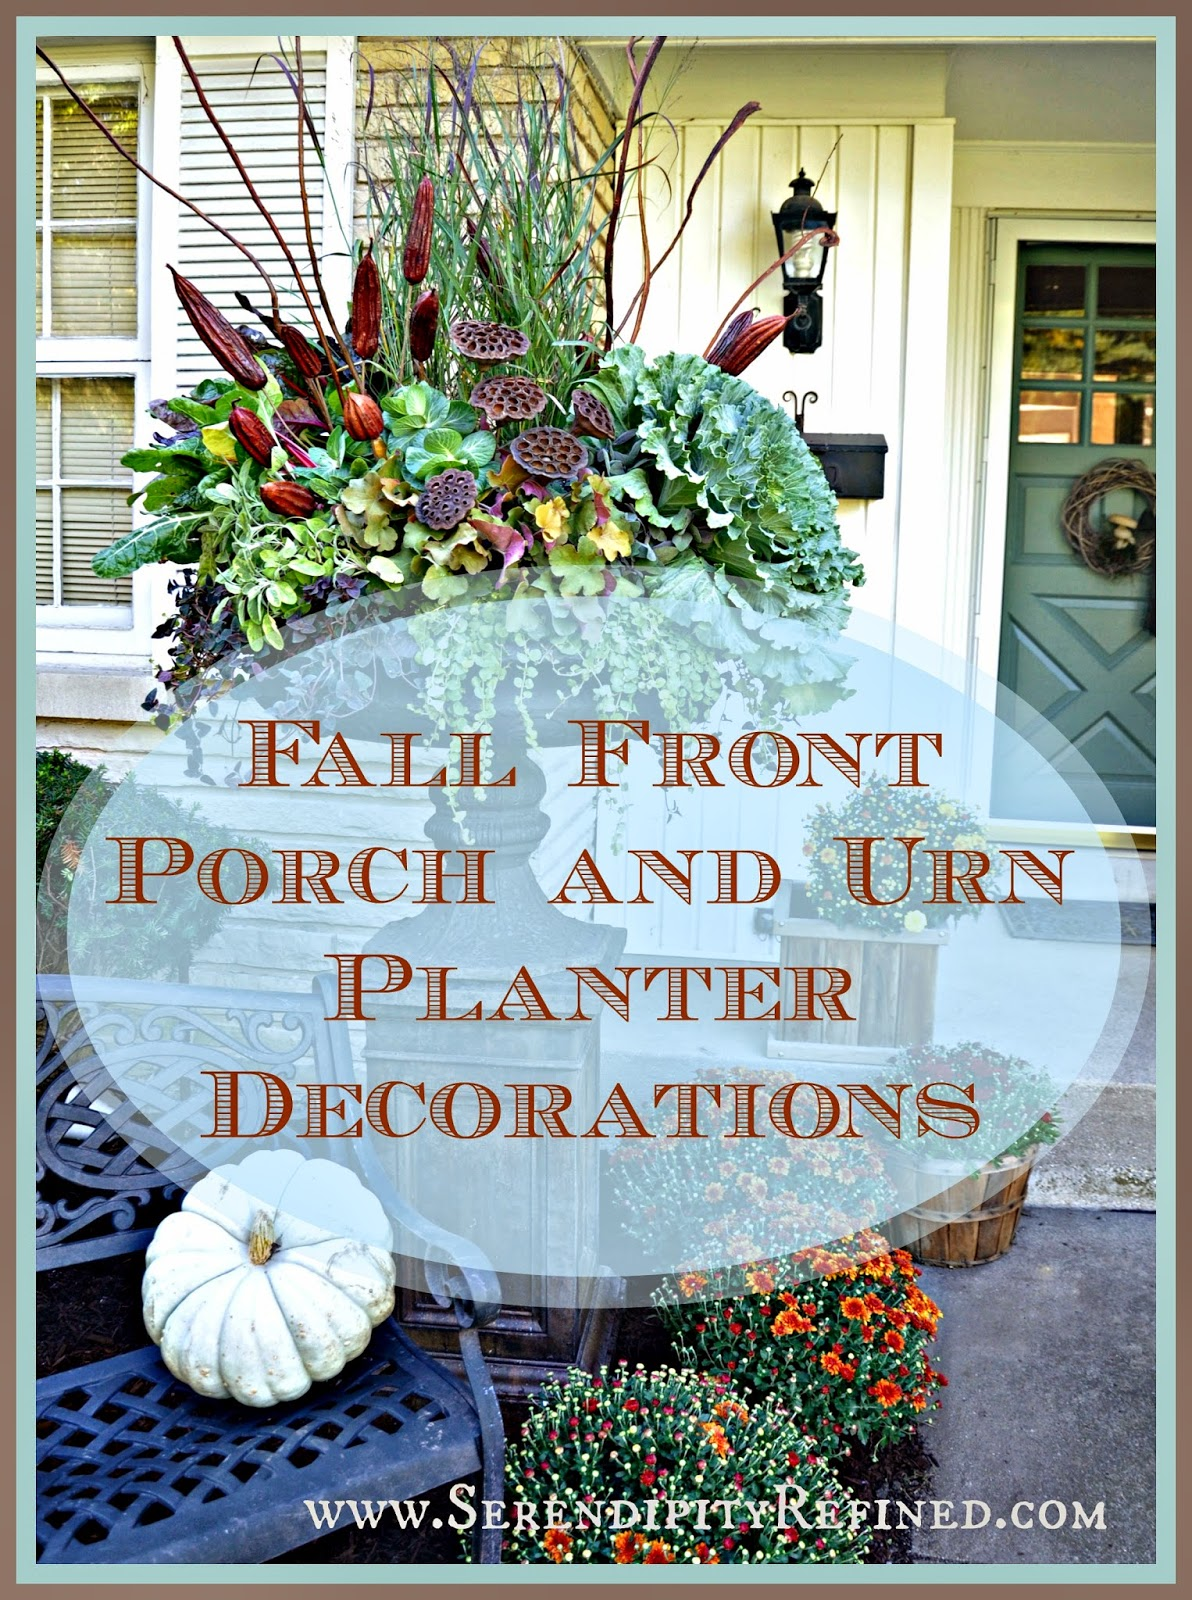 Outdoor fall decorating ideas front porch - I Did Some Decorating On The Front Porch Of The French Farmhouse Last Week To Be Completely Transparent I Did It So That The Neighbors Can Tell That